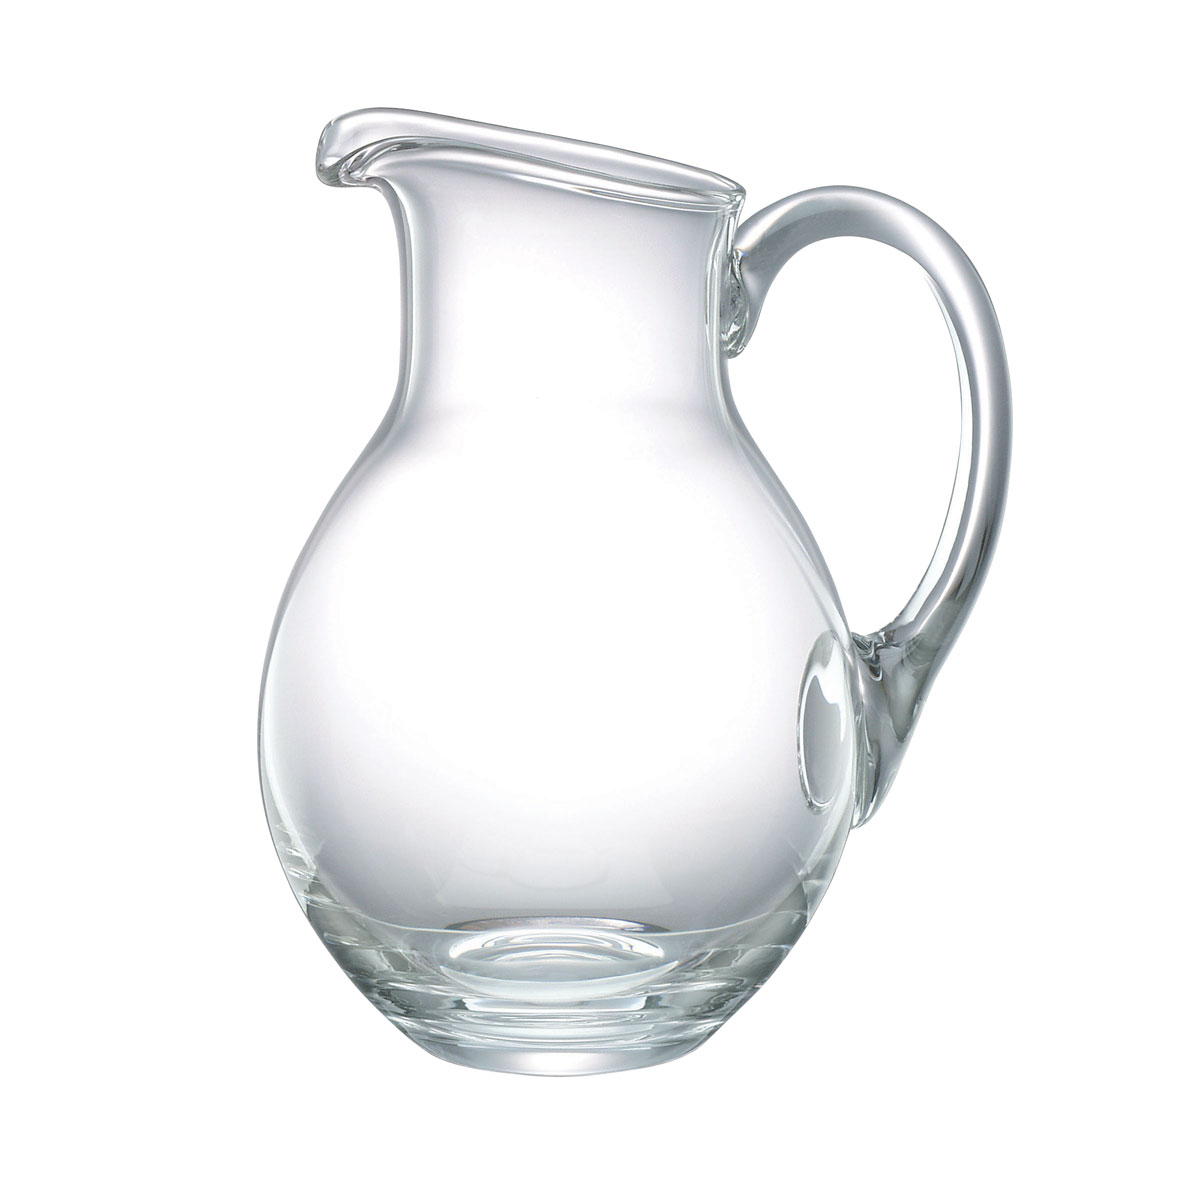 Marquis by Waterford Crystal Vintage Moments Round Pitcher